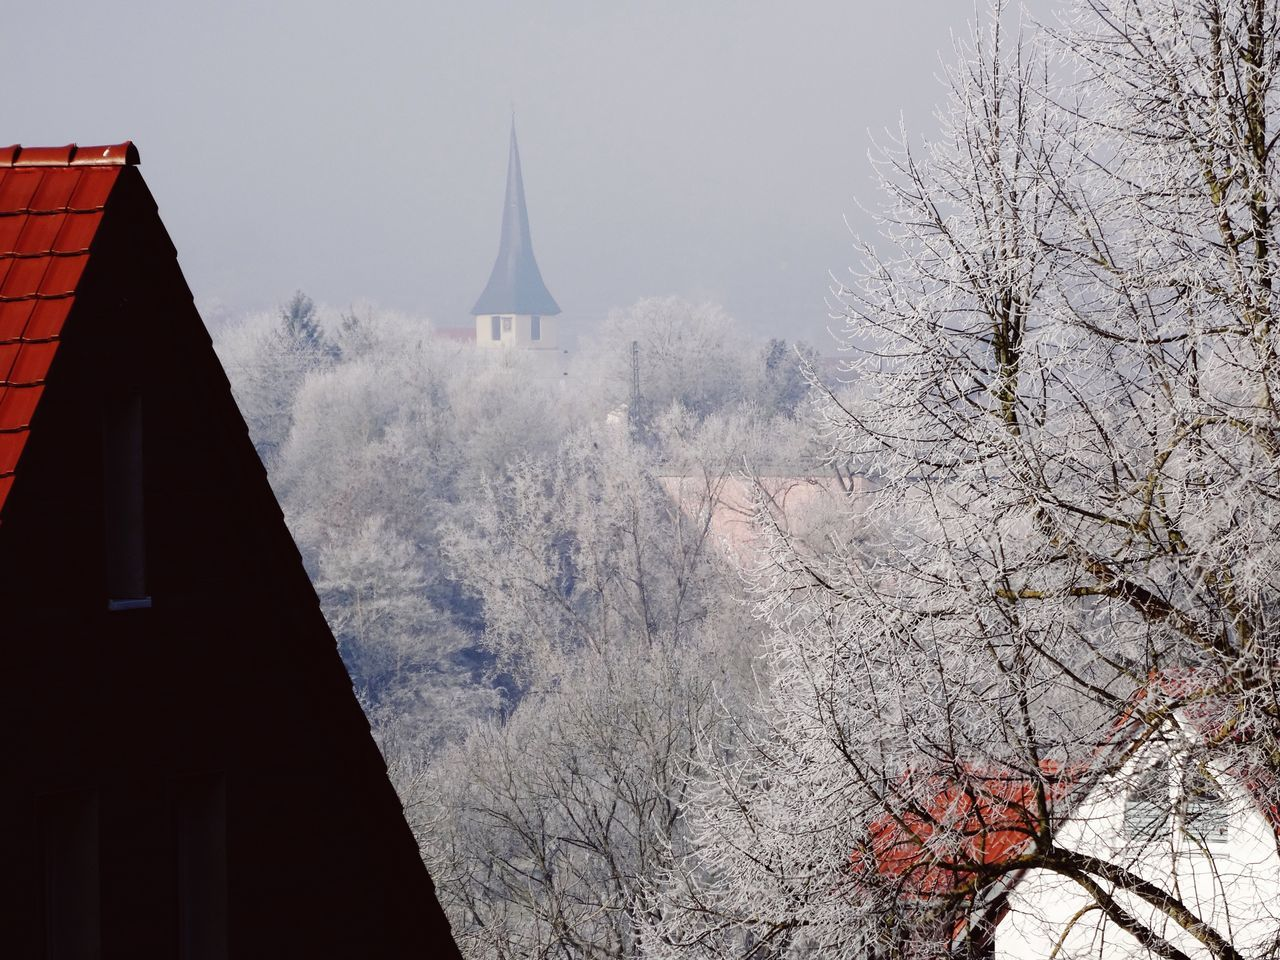 Built Structure Architecture Tree Building Exterior Winter Snow Cold Temperature No People Germany Outdoors Day Sky Nature Cold Days Cold White Frost Frost New Year Winter House Roof Church City